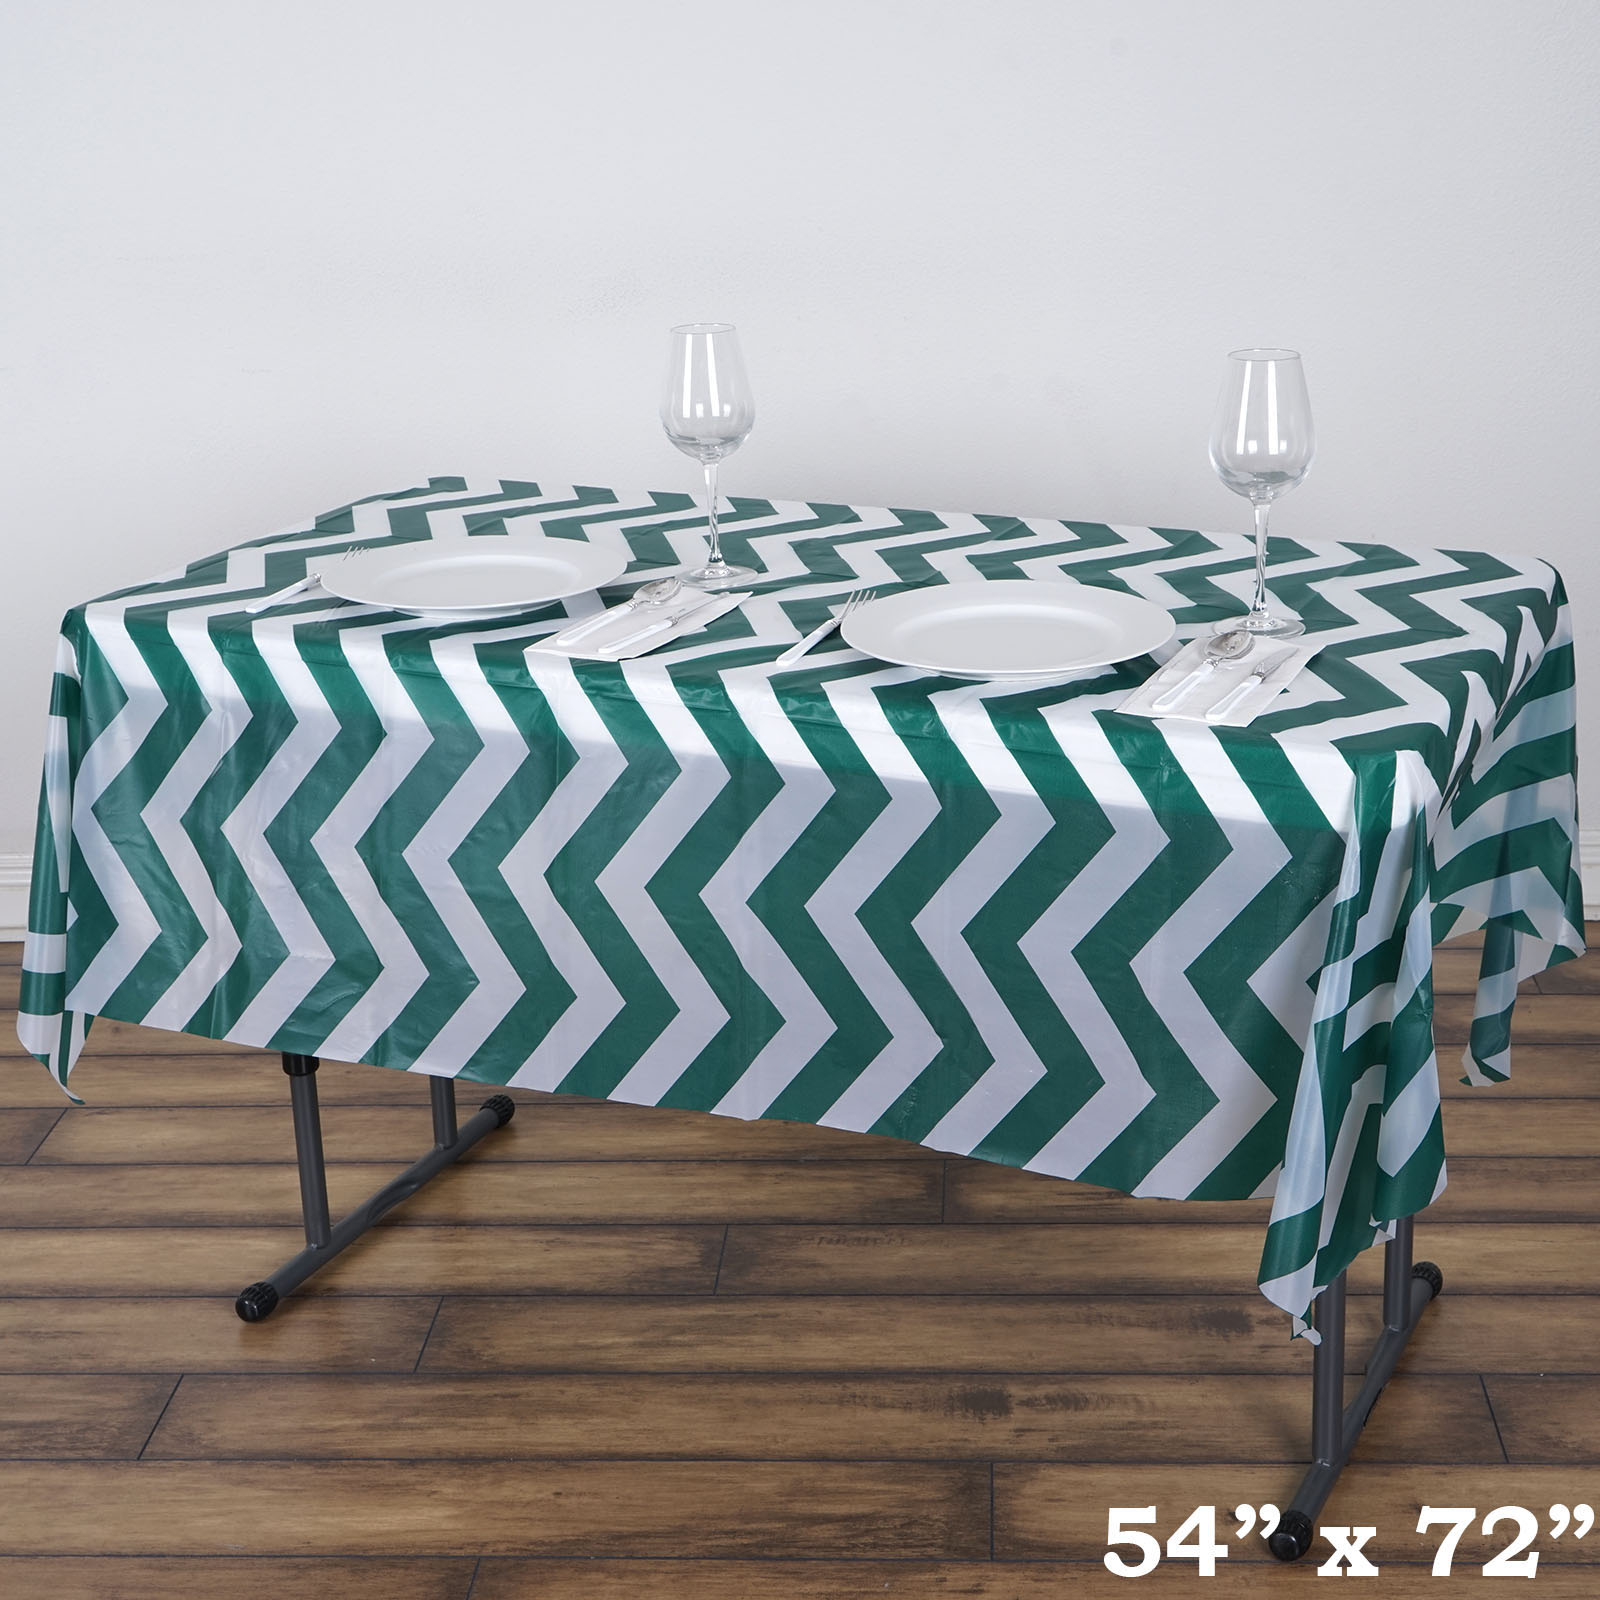 disposable plastic chair covers for parties modern leather dining chairs with arms table 54x72 in chevron